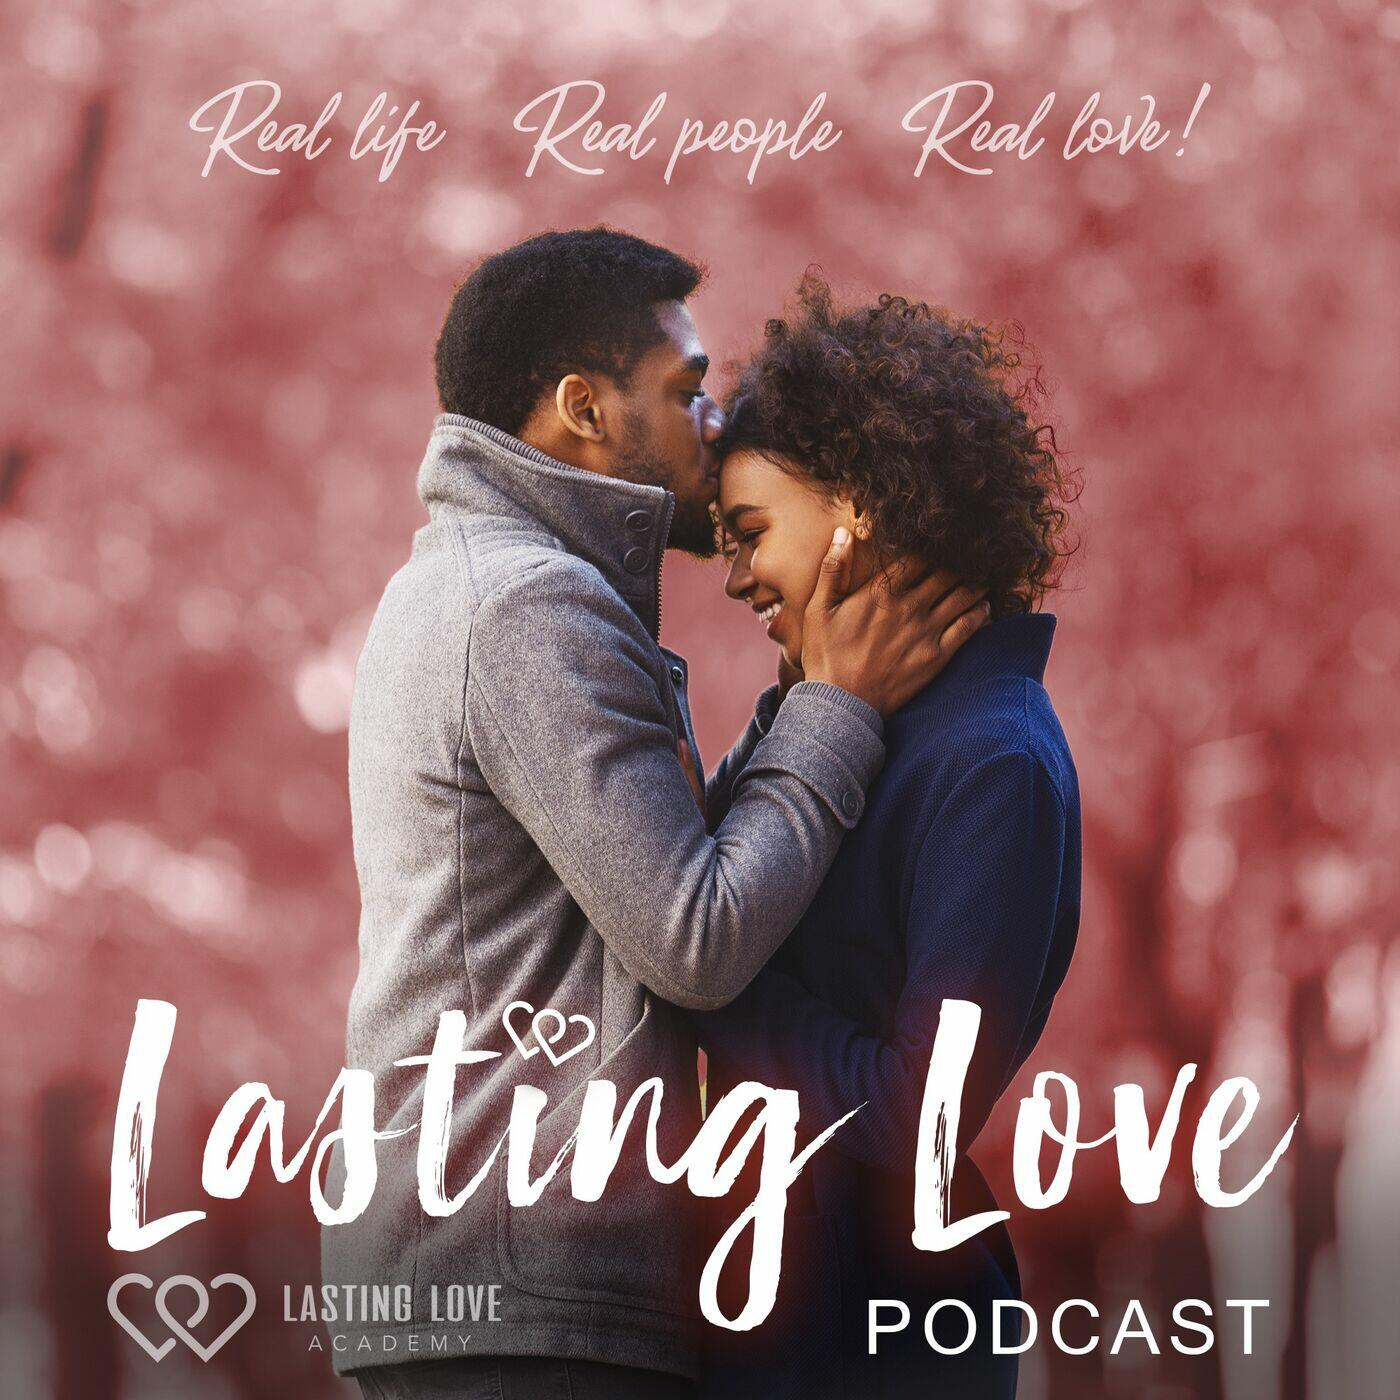 The LASTING LOVE Podcast